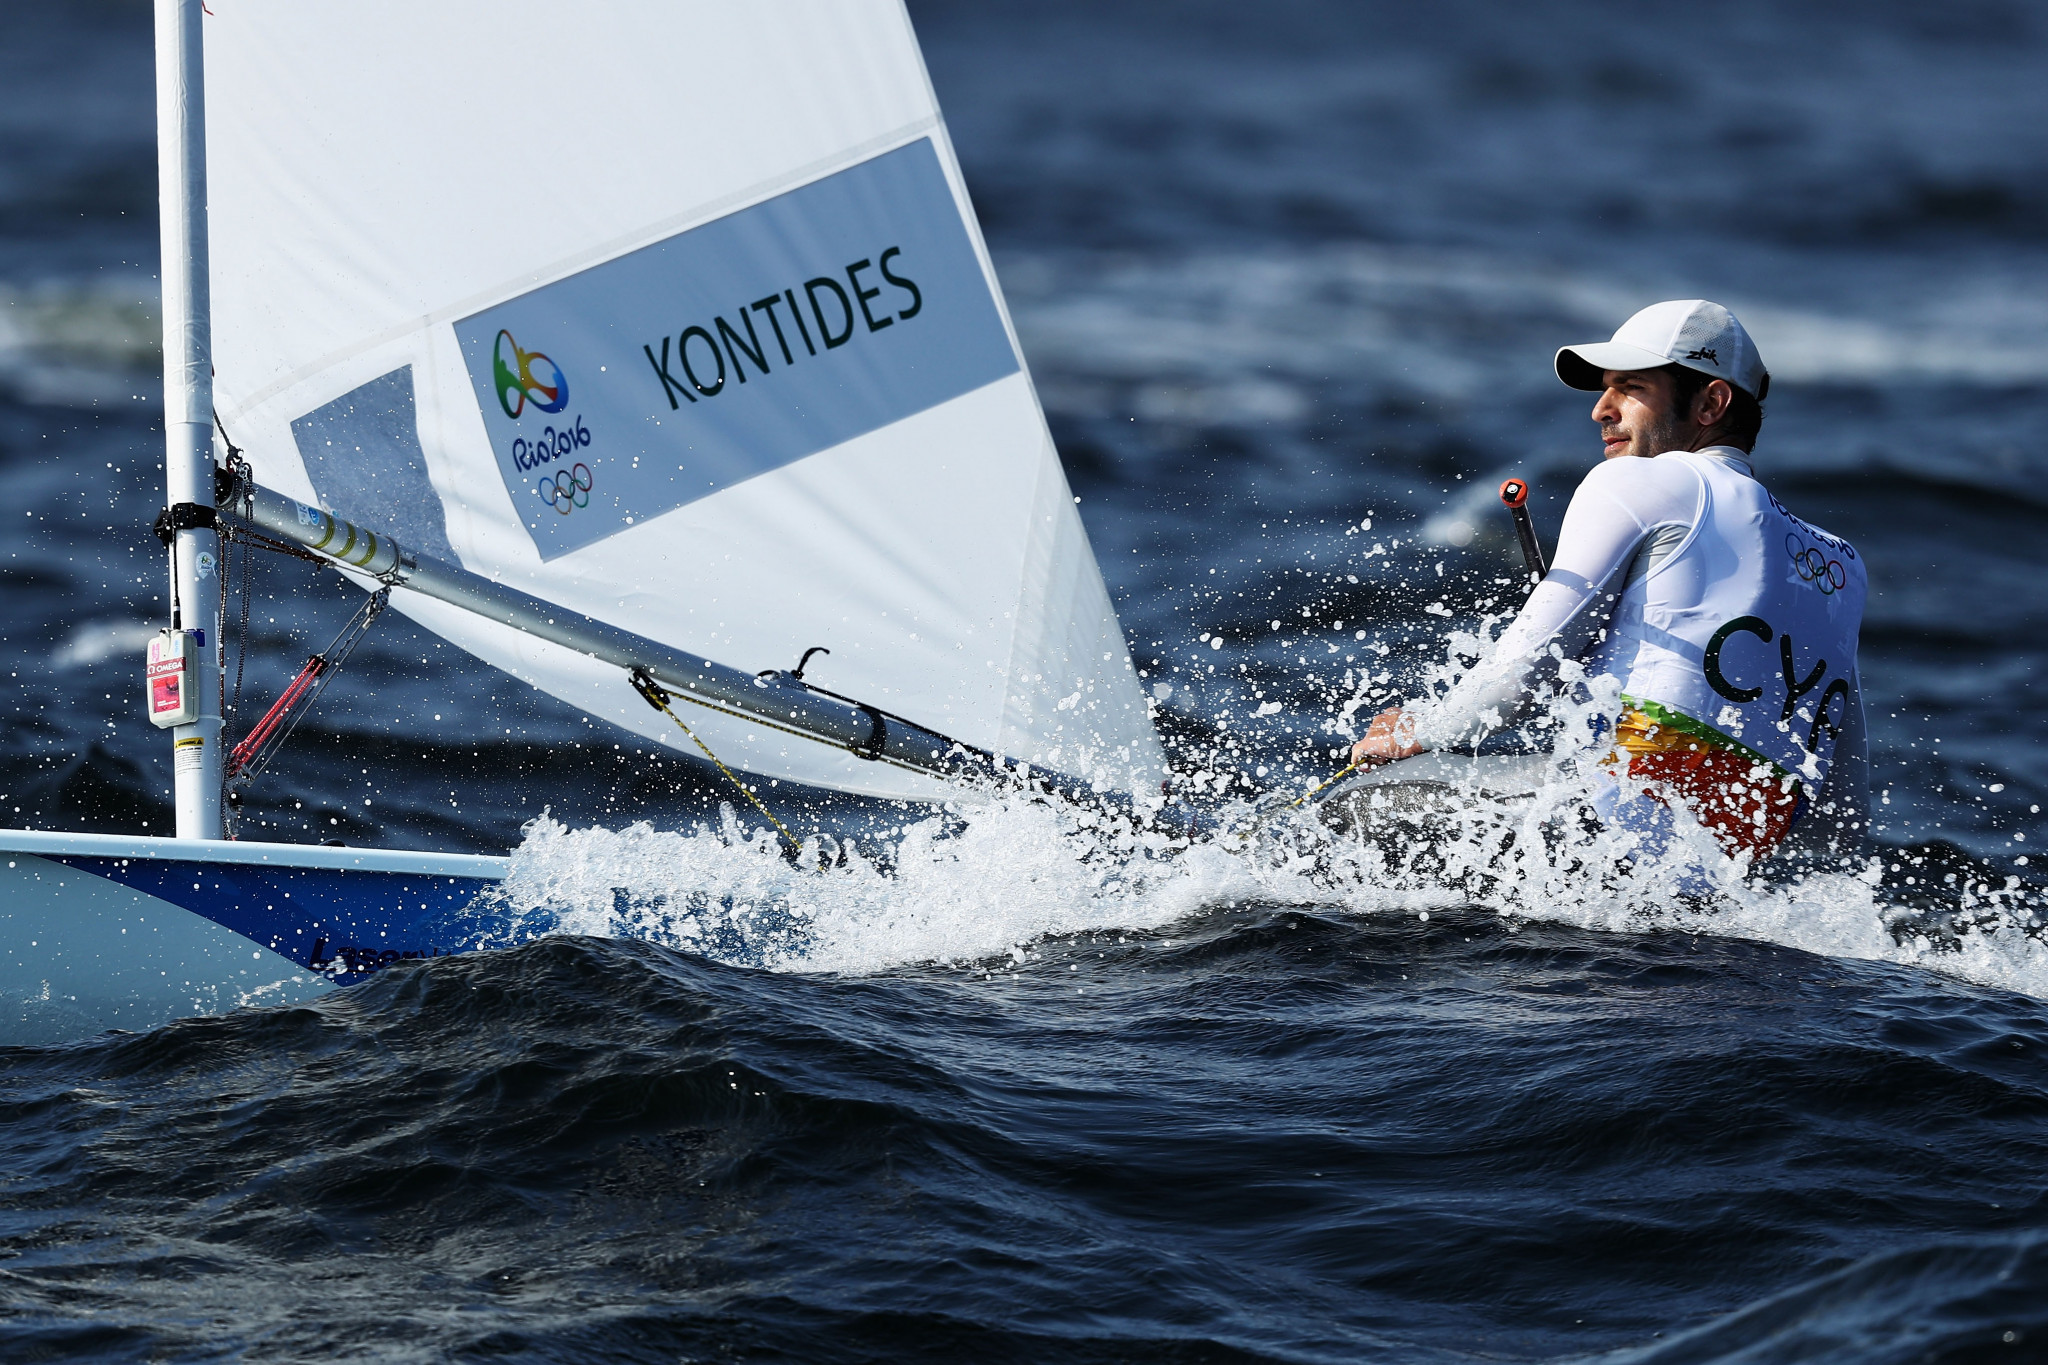 Pavlos Kontides of Cyprus won the men's World Sailor of the Year prize in 2018 ©Getty Images